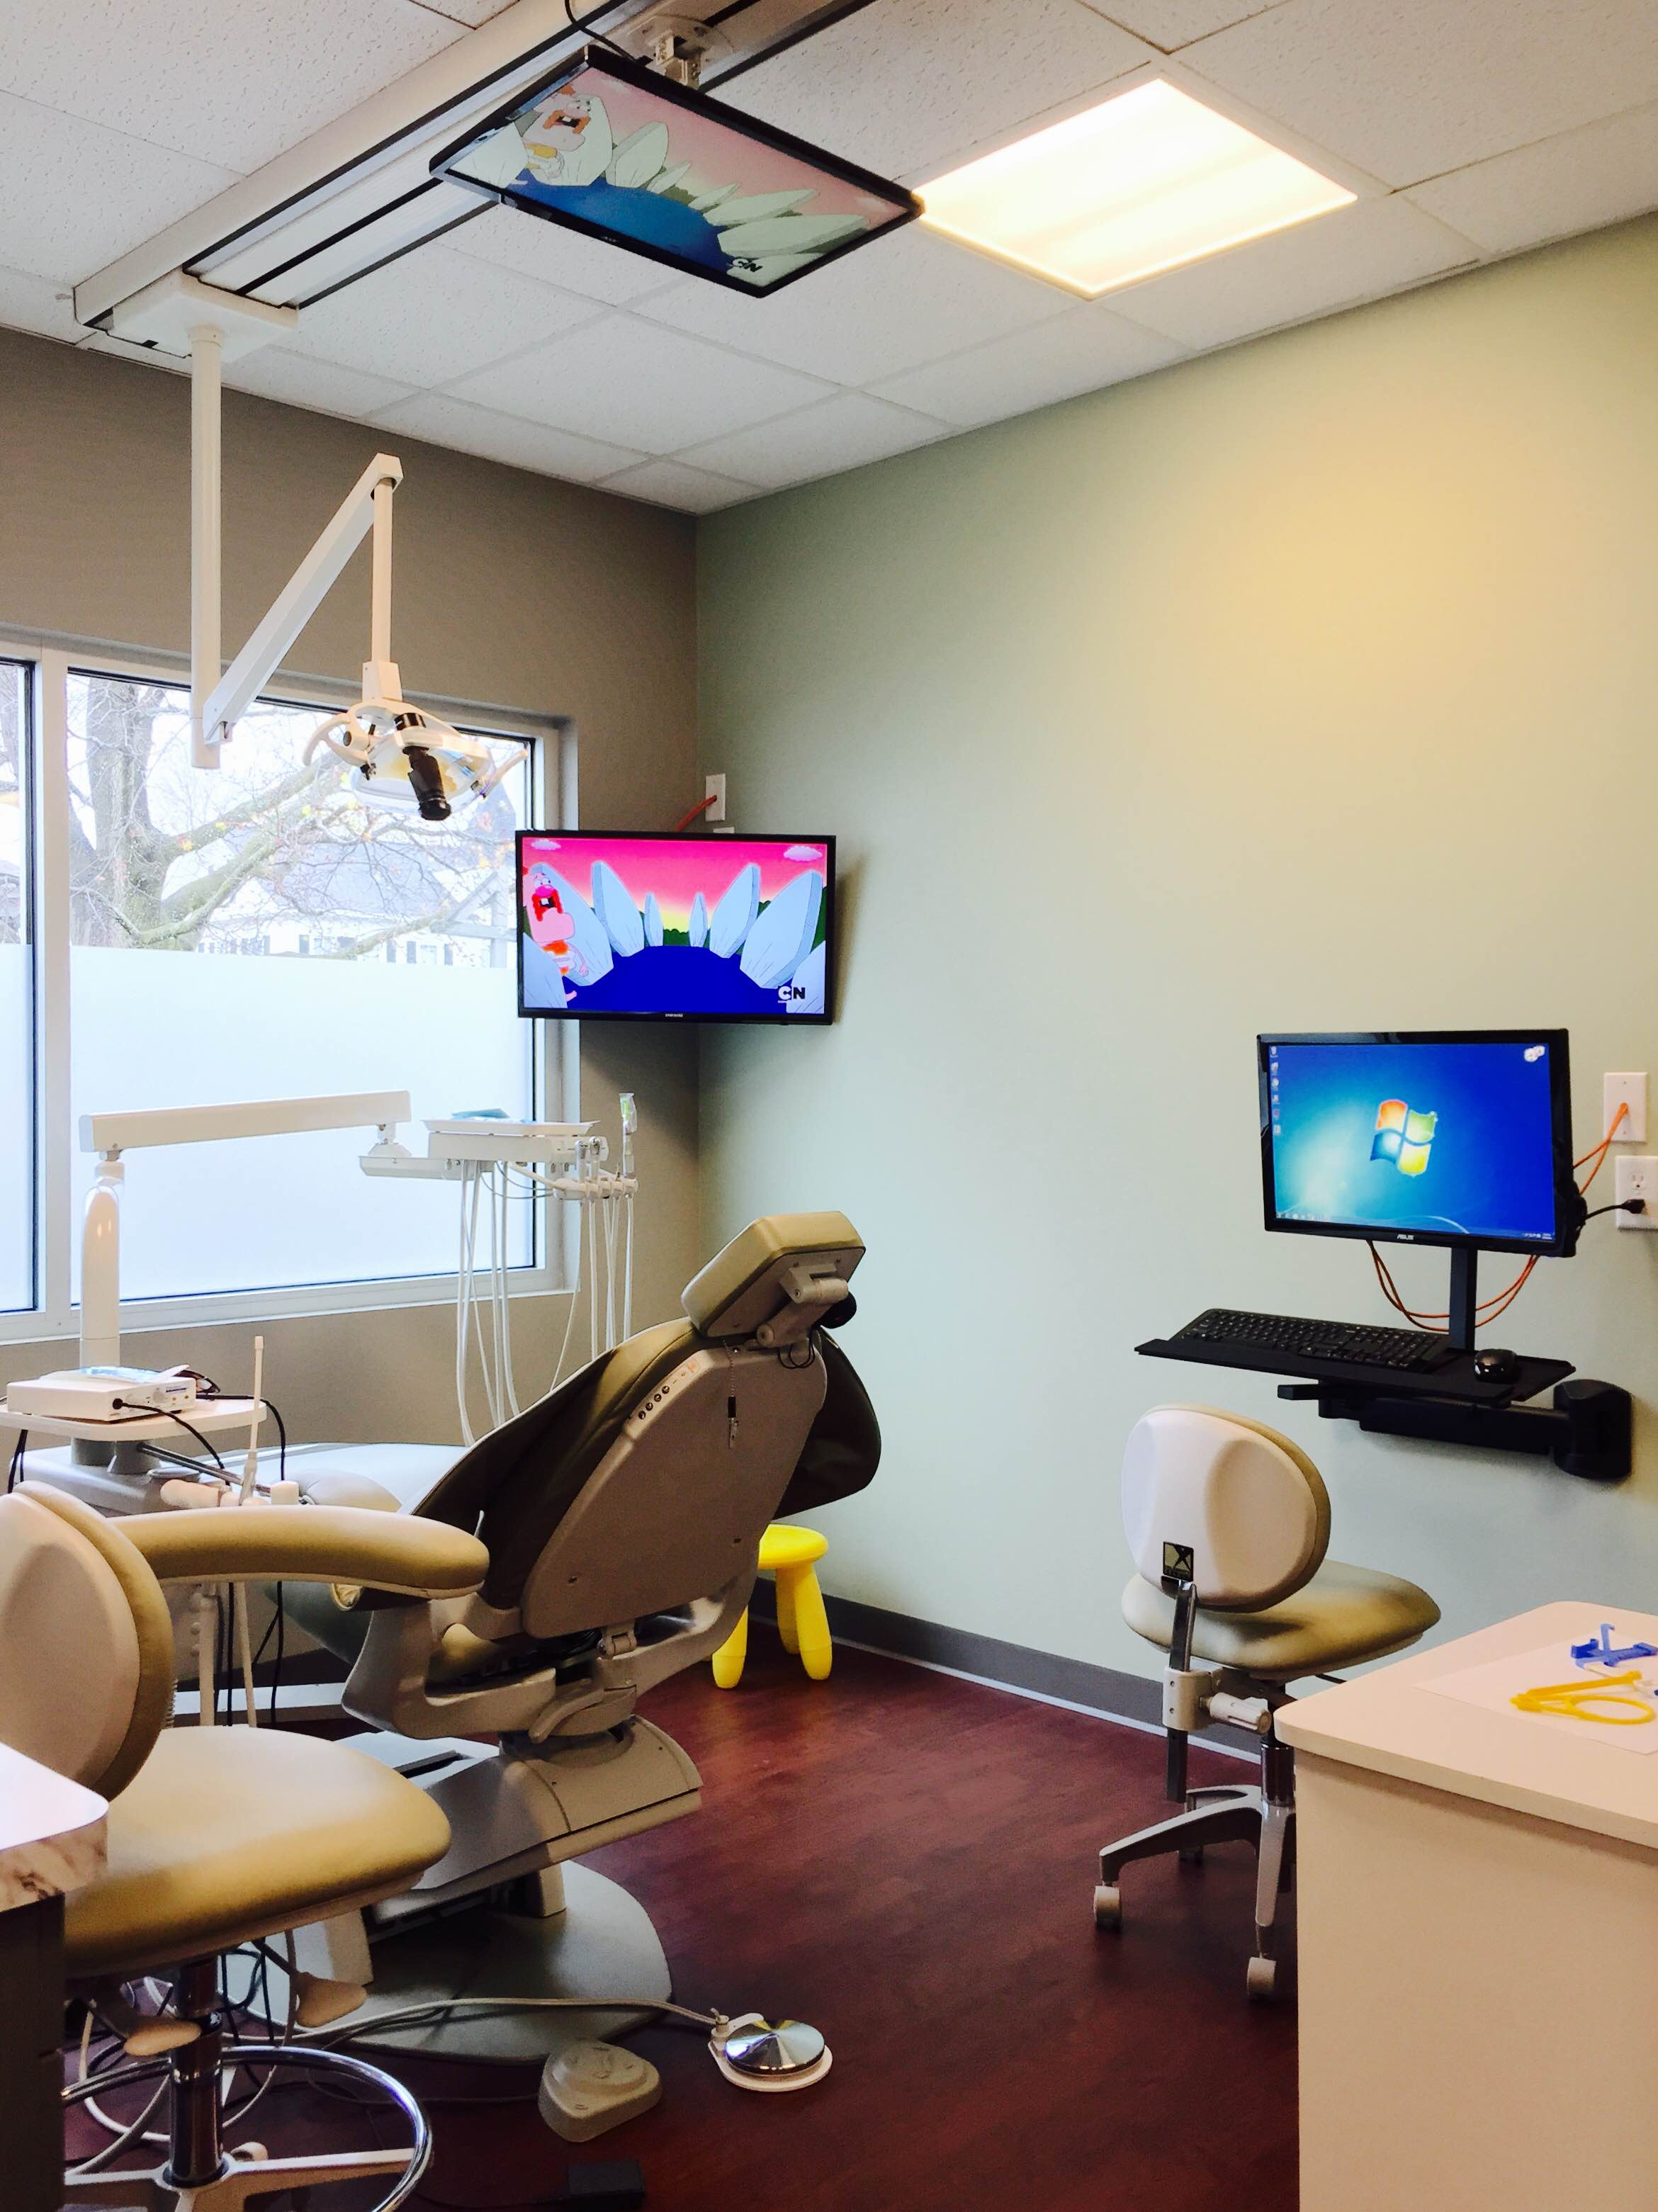 brown browns area office etobicoke our view s dental dentist line